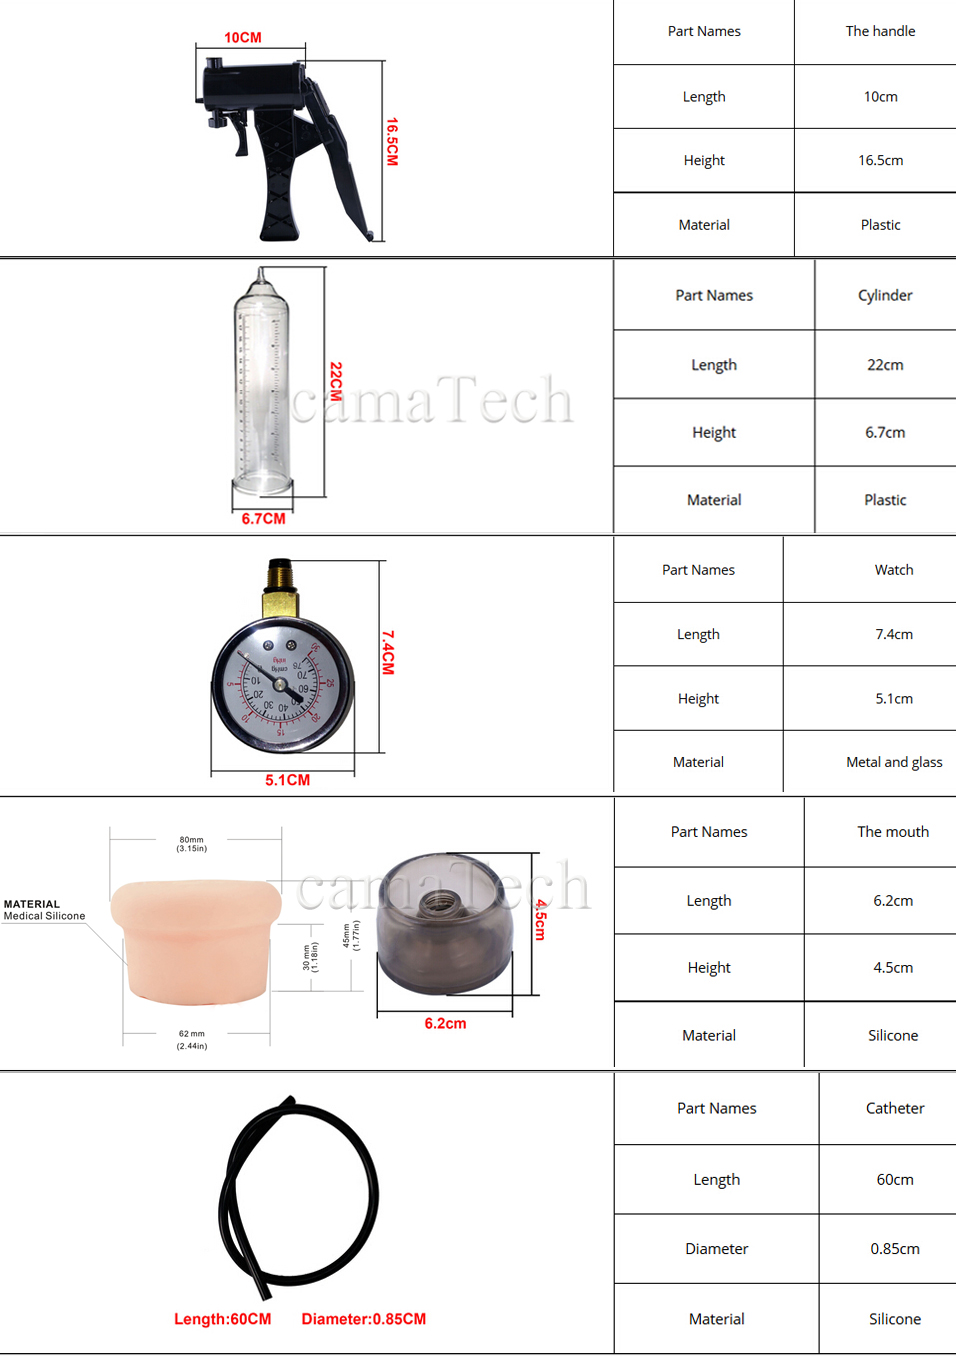 camaTech Male Pistol Penis Pump Enlarger Enlargement With Master Pressure Gauge Dildo Erection Enhancer Vacuum Sleeve Sex Toys